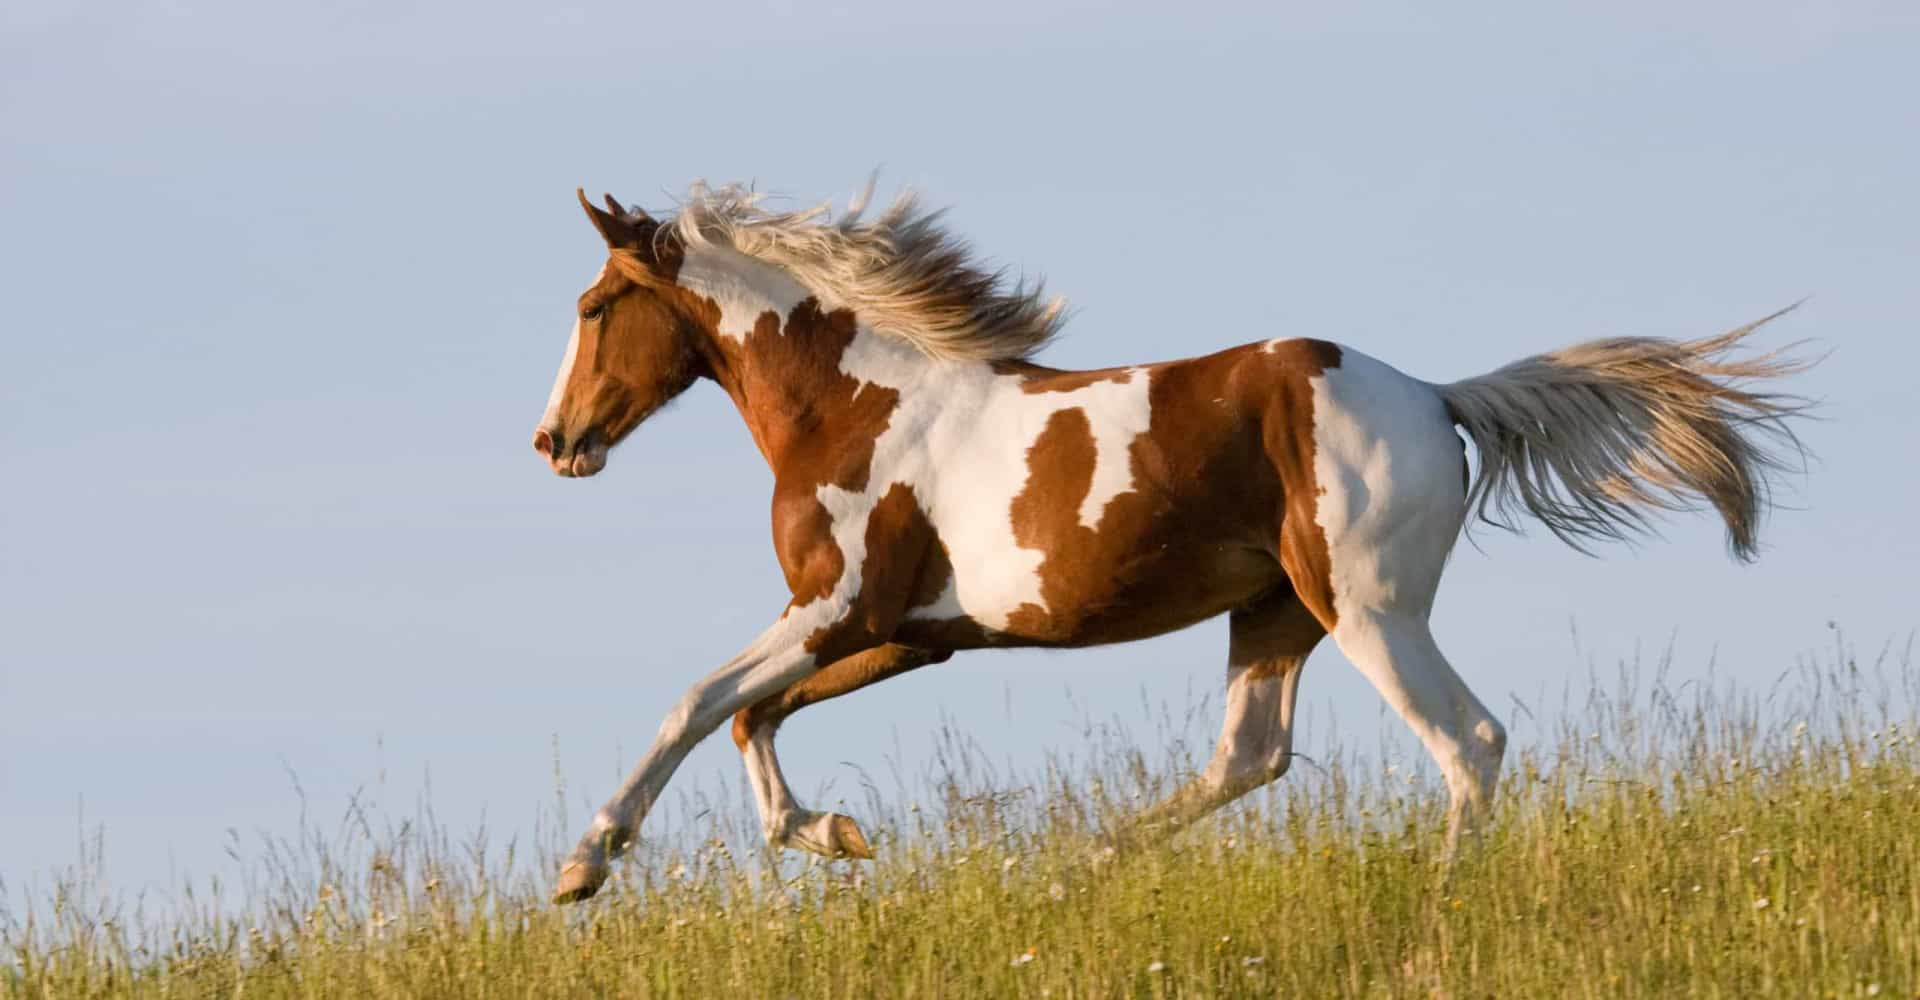 American horse breeds and where to see them in the wild